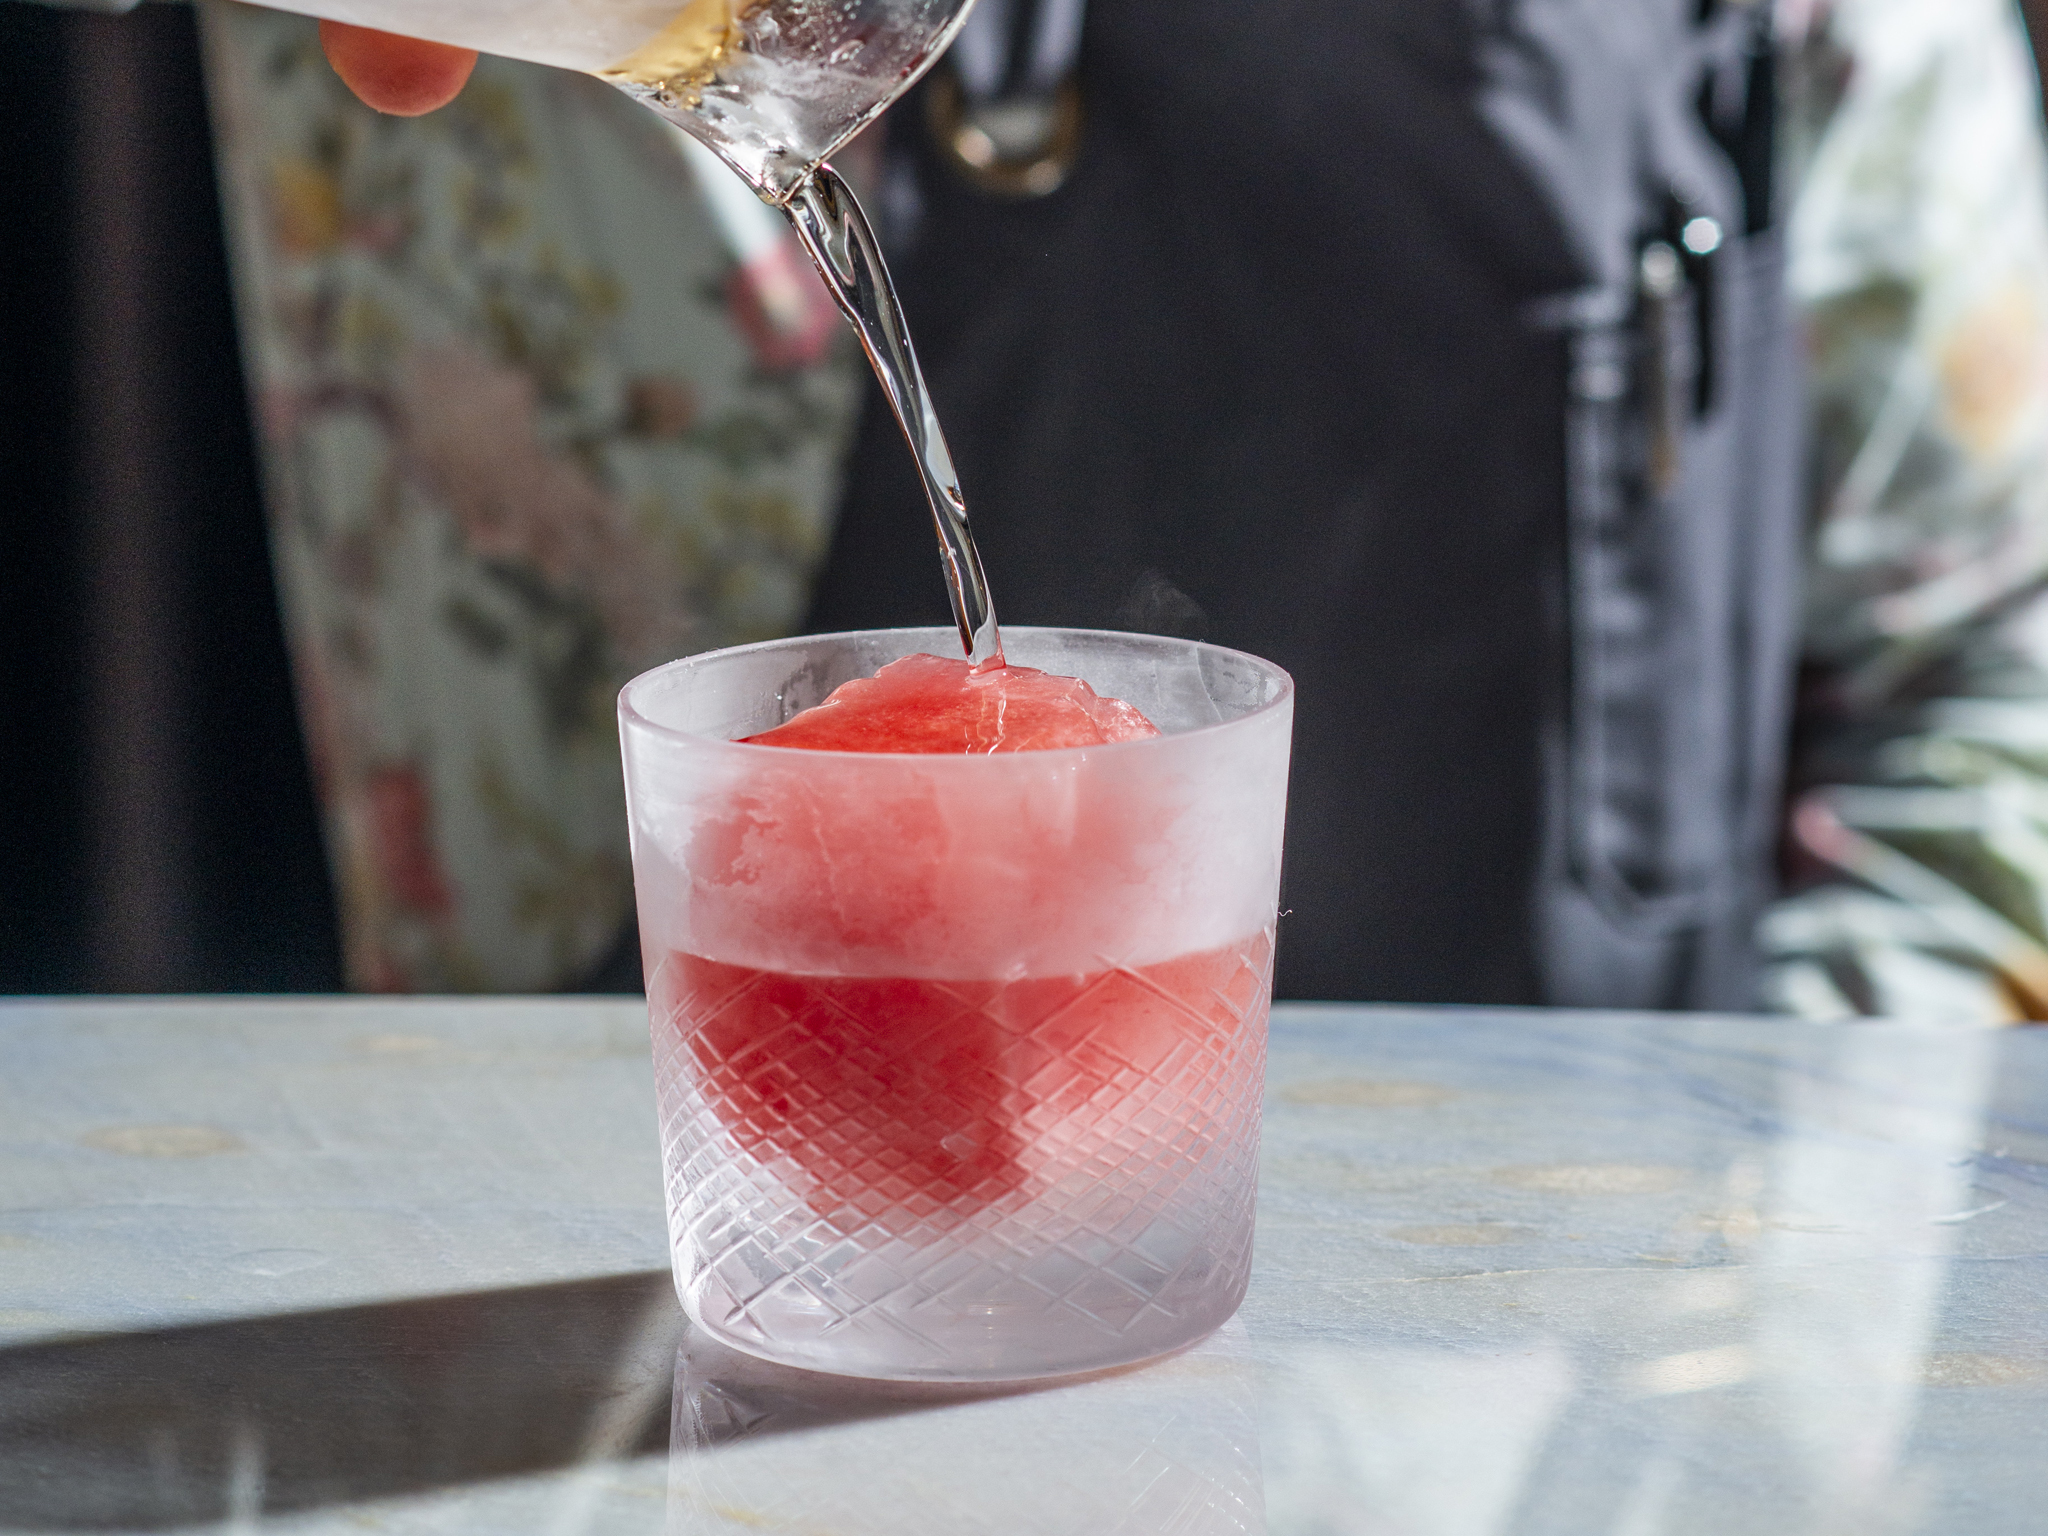 The 50 best cocktail bars in London